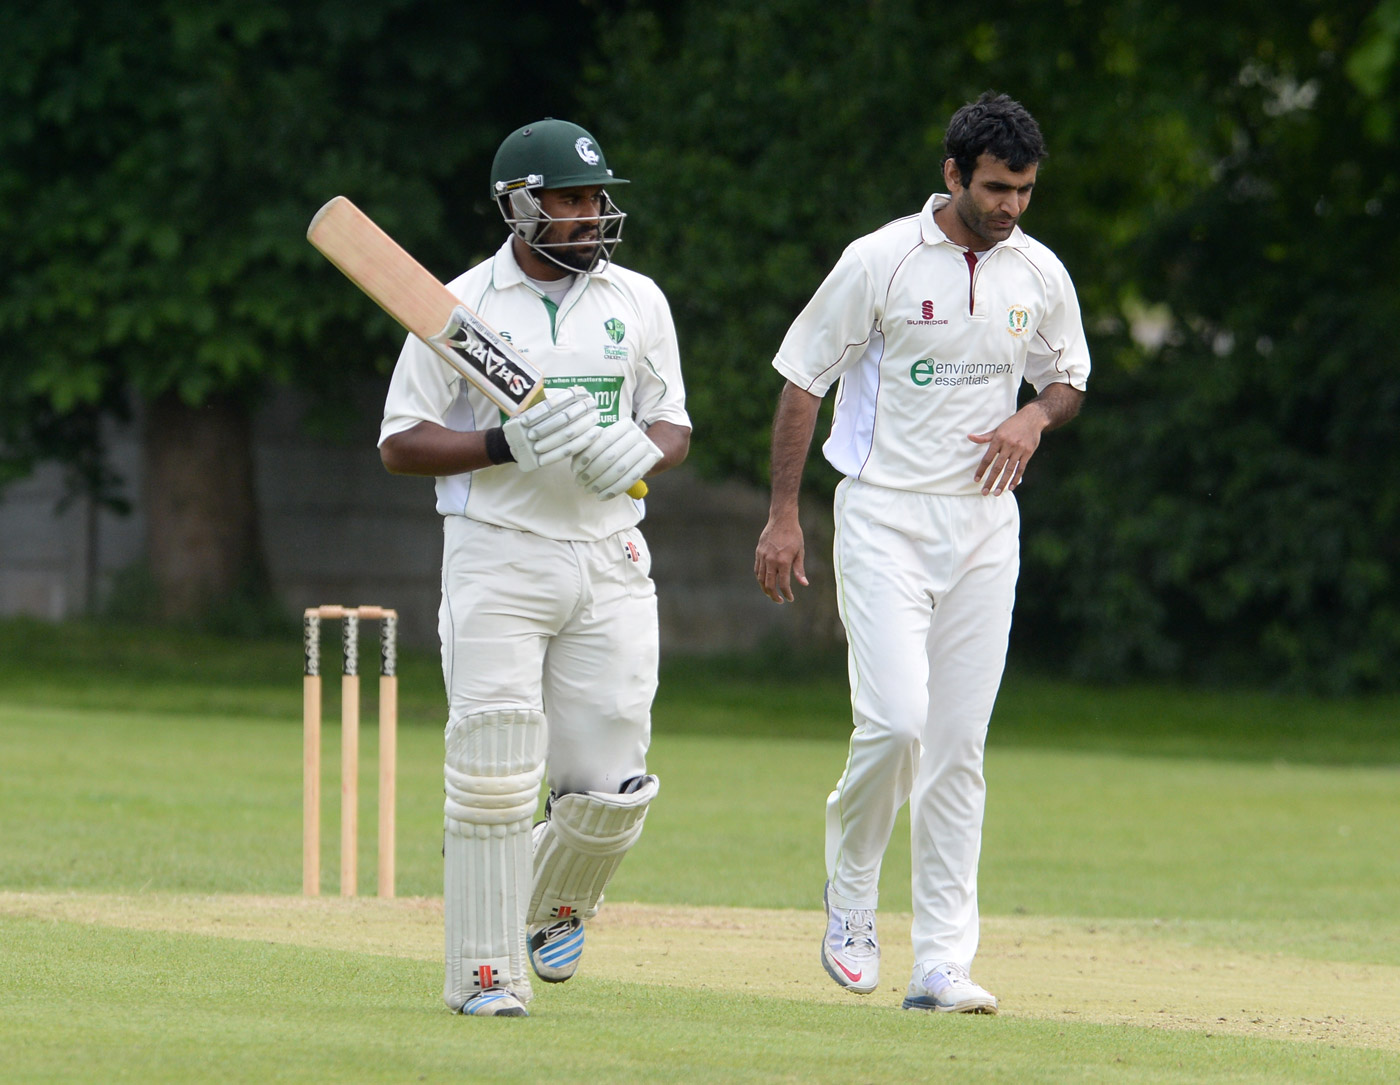 Porthill Park's Rao Iftikhar Anjum (right) preferred all play and no work